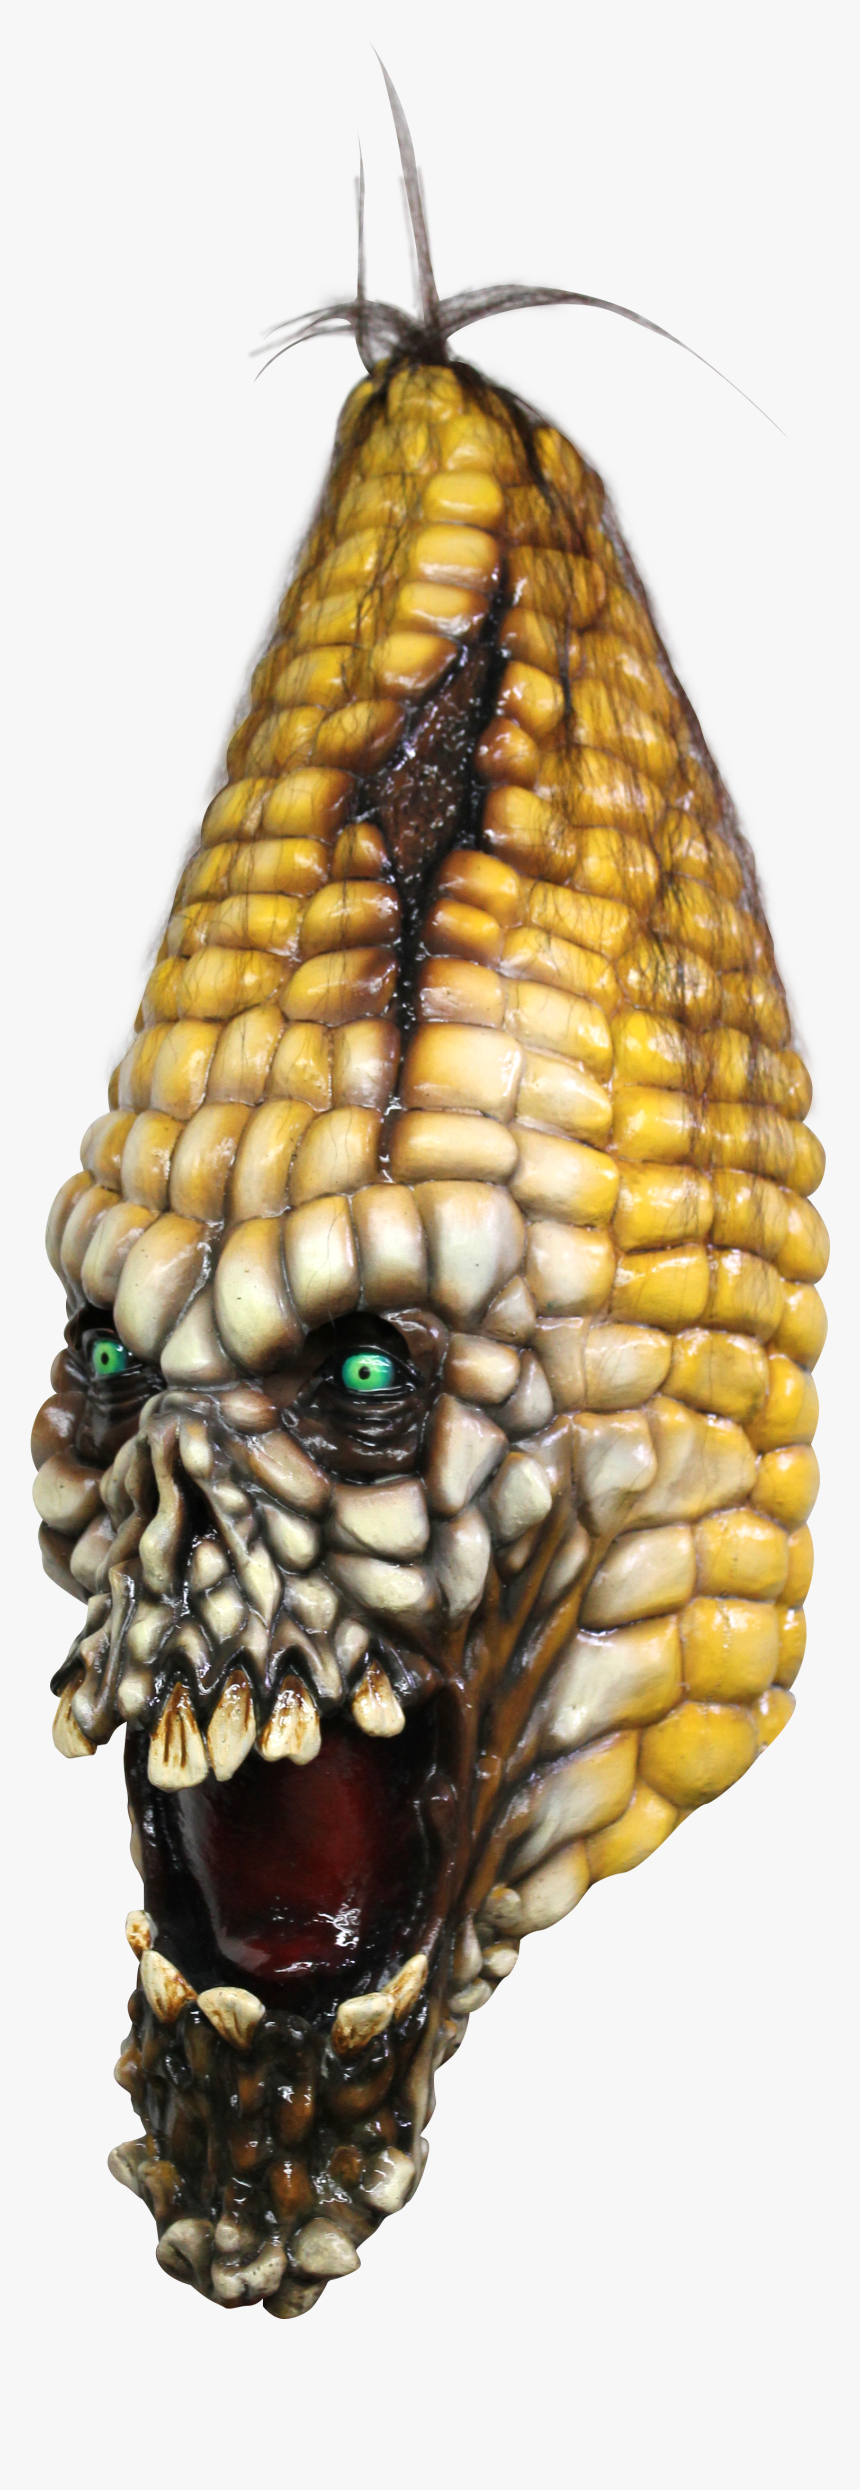 26340 - Evil Corn Mask, HD Png Download, Free Download